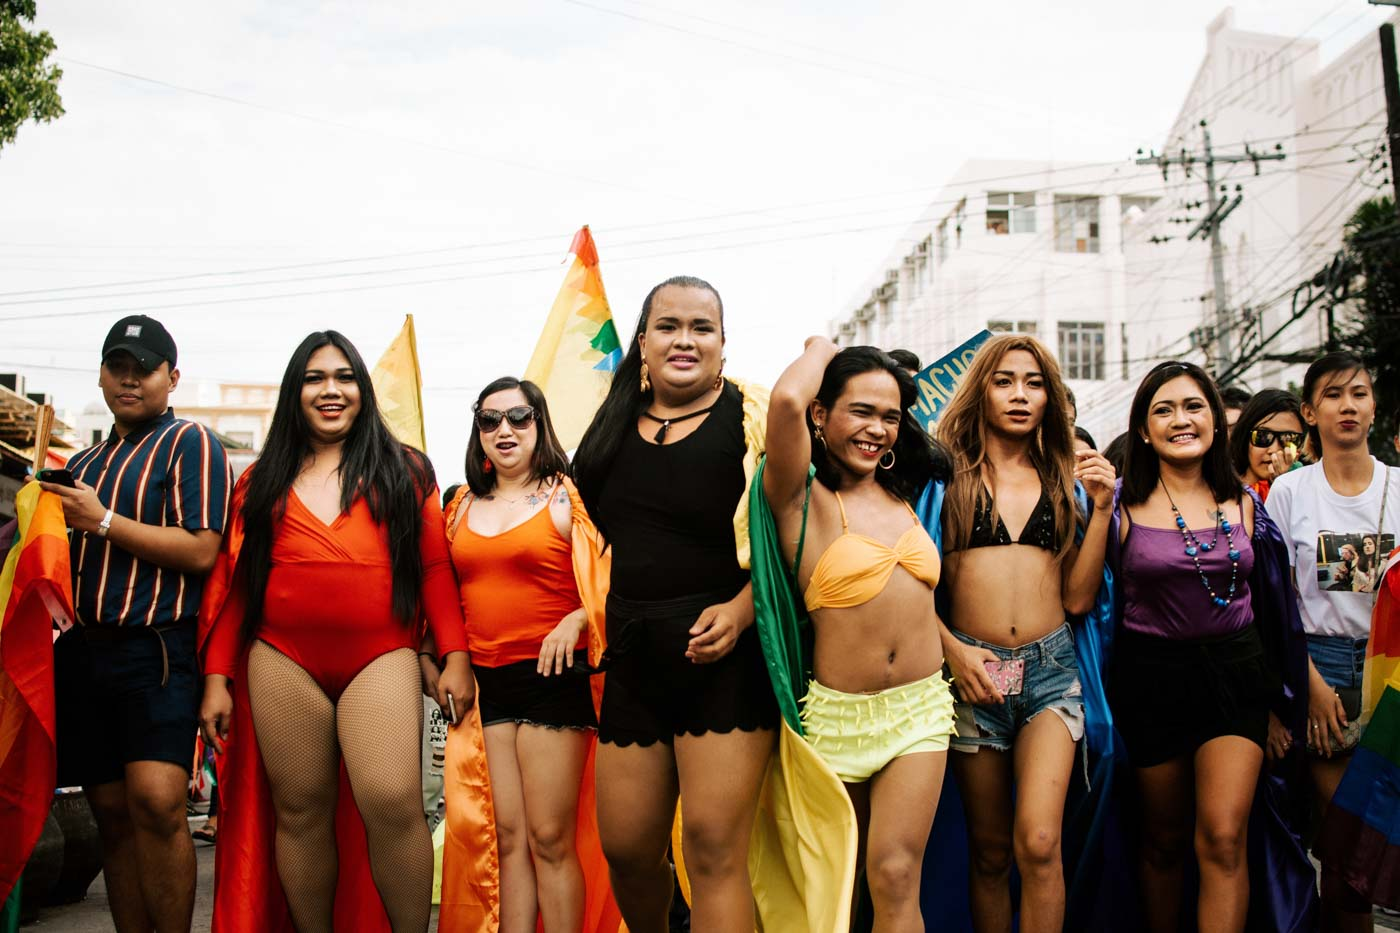 HUMAN RAINBOW. Members of the LGBTQ+ form a human rainbow with their color-coordinated outfits. Photo by Jorge Gamboa